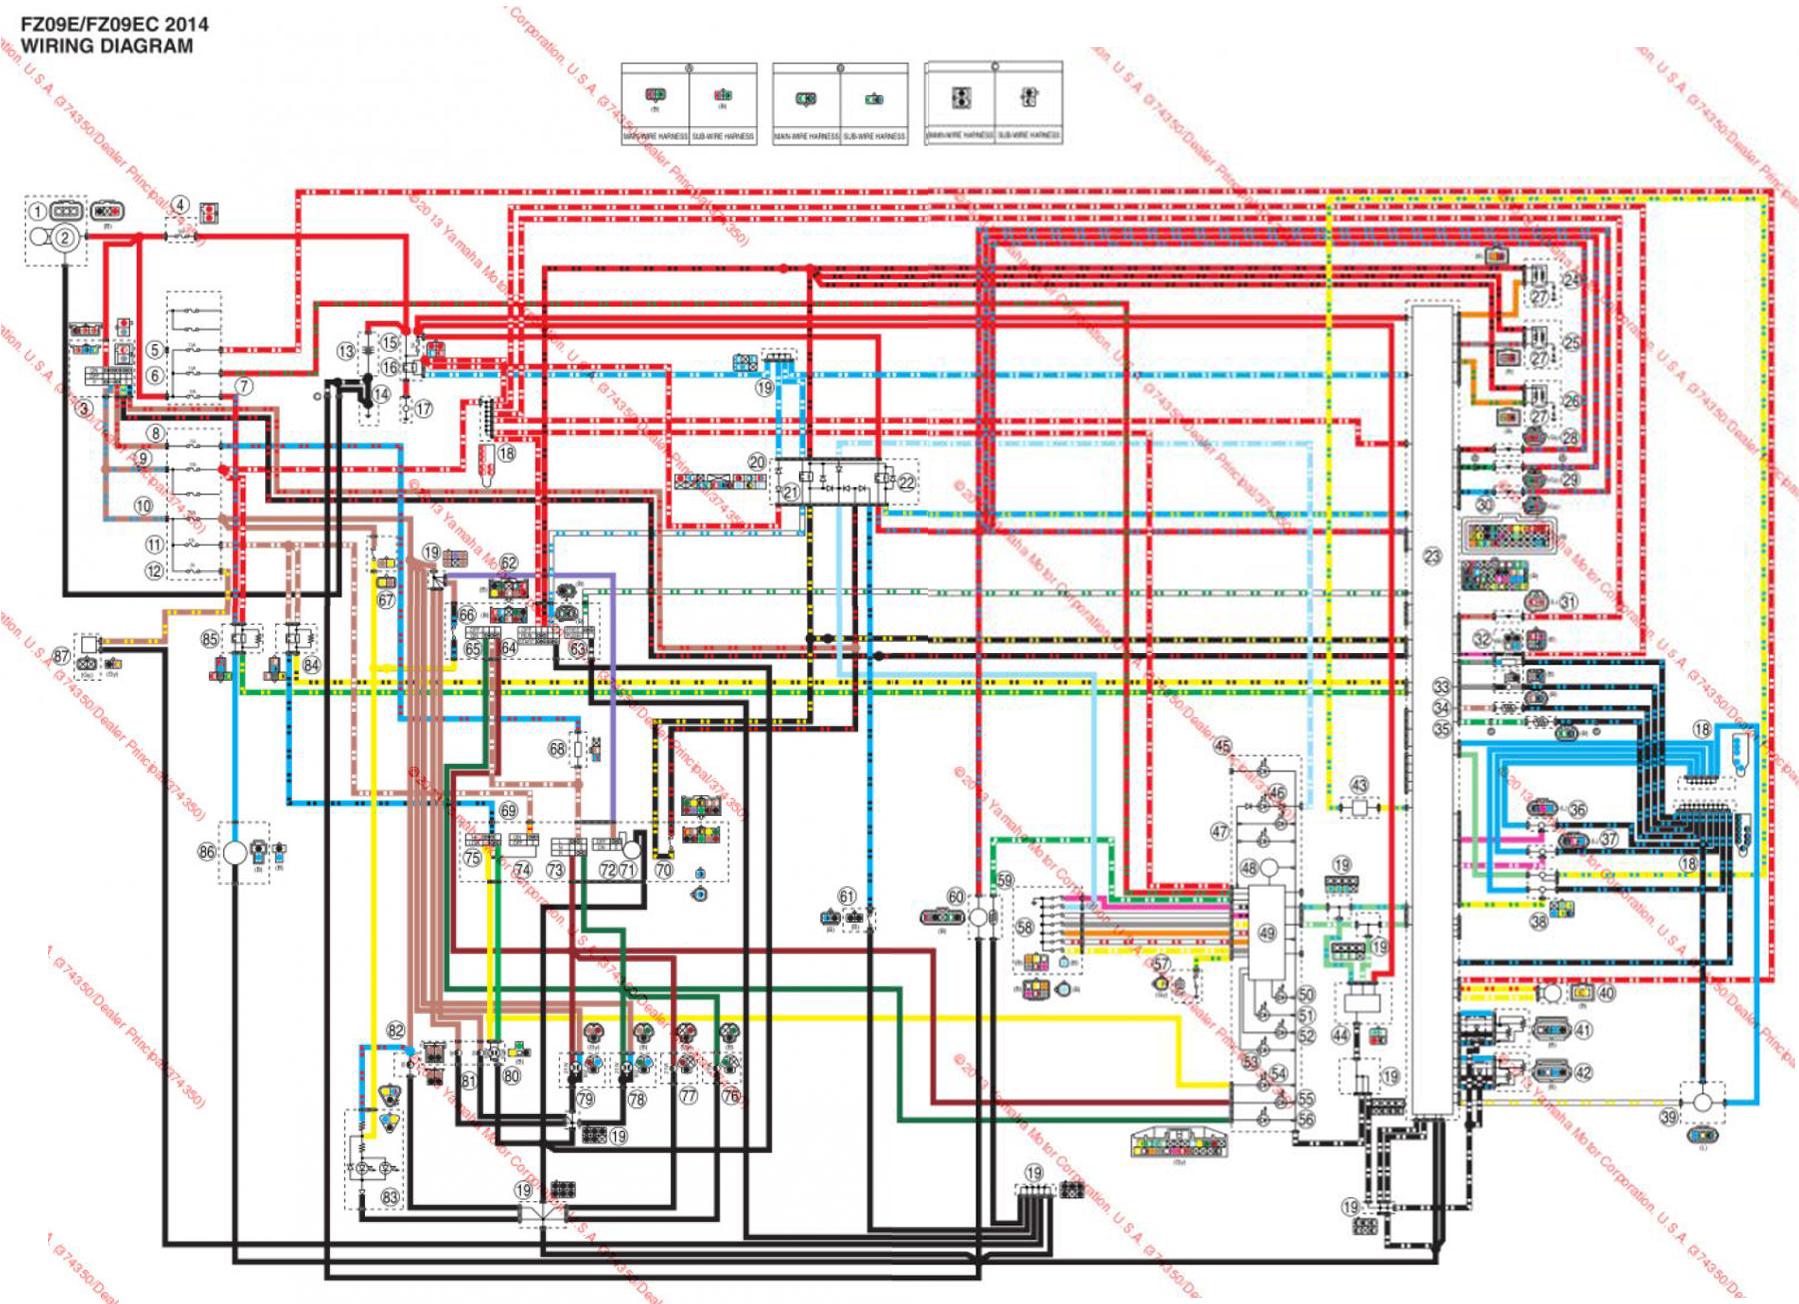 FZ09_Wiring_Diagram anyone have a wiring diagram? Yamaha Outboard Wiring Diagram at eliteediting.co